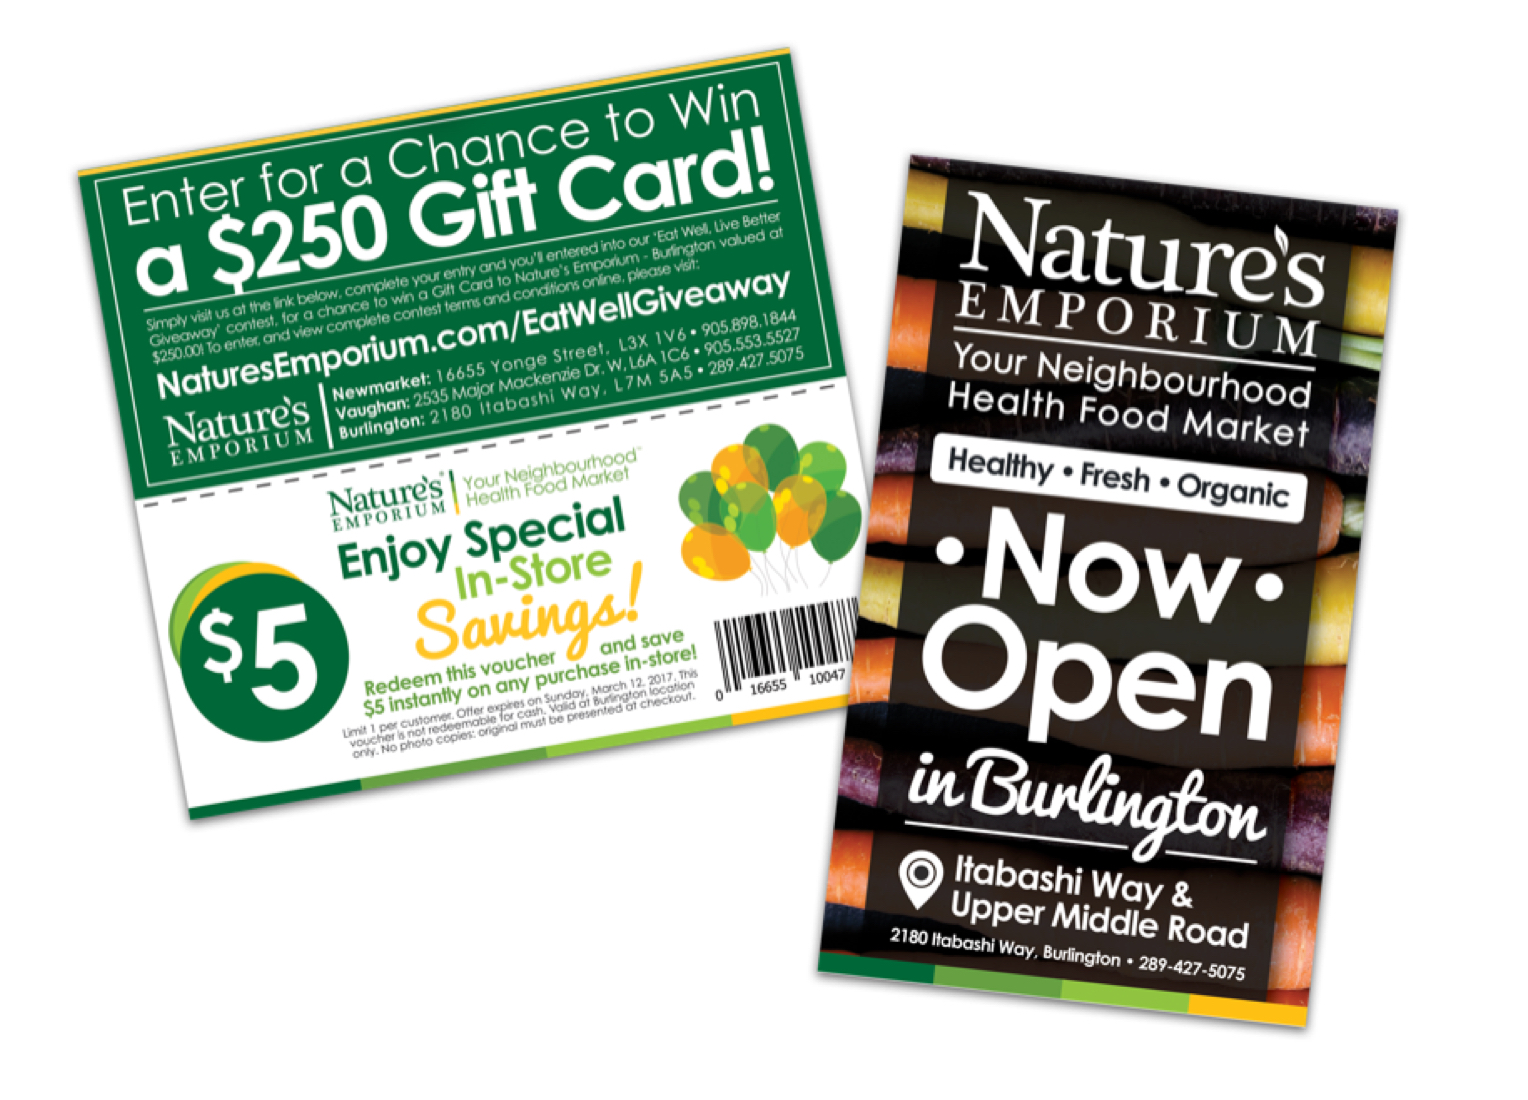 Examples of self-mailer coupon and postcard designs from Nature's Emporium, a Burlington, Ontario health food market.